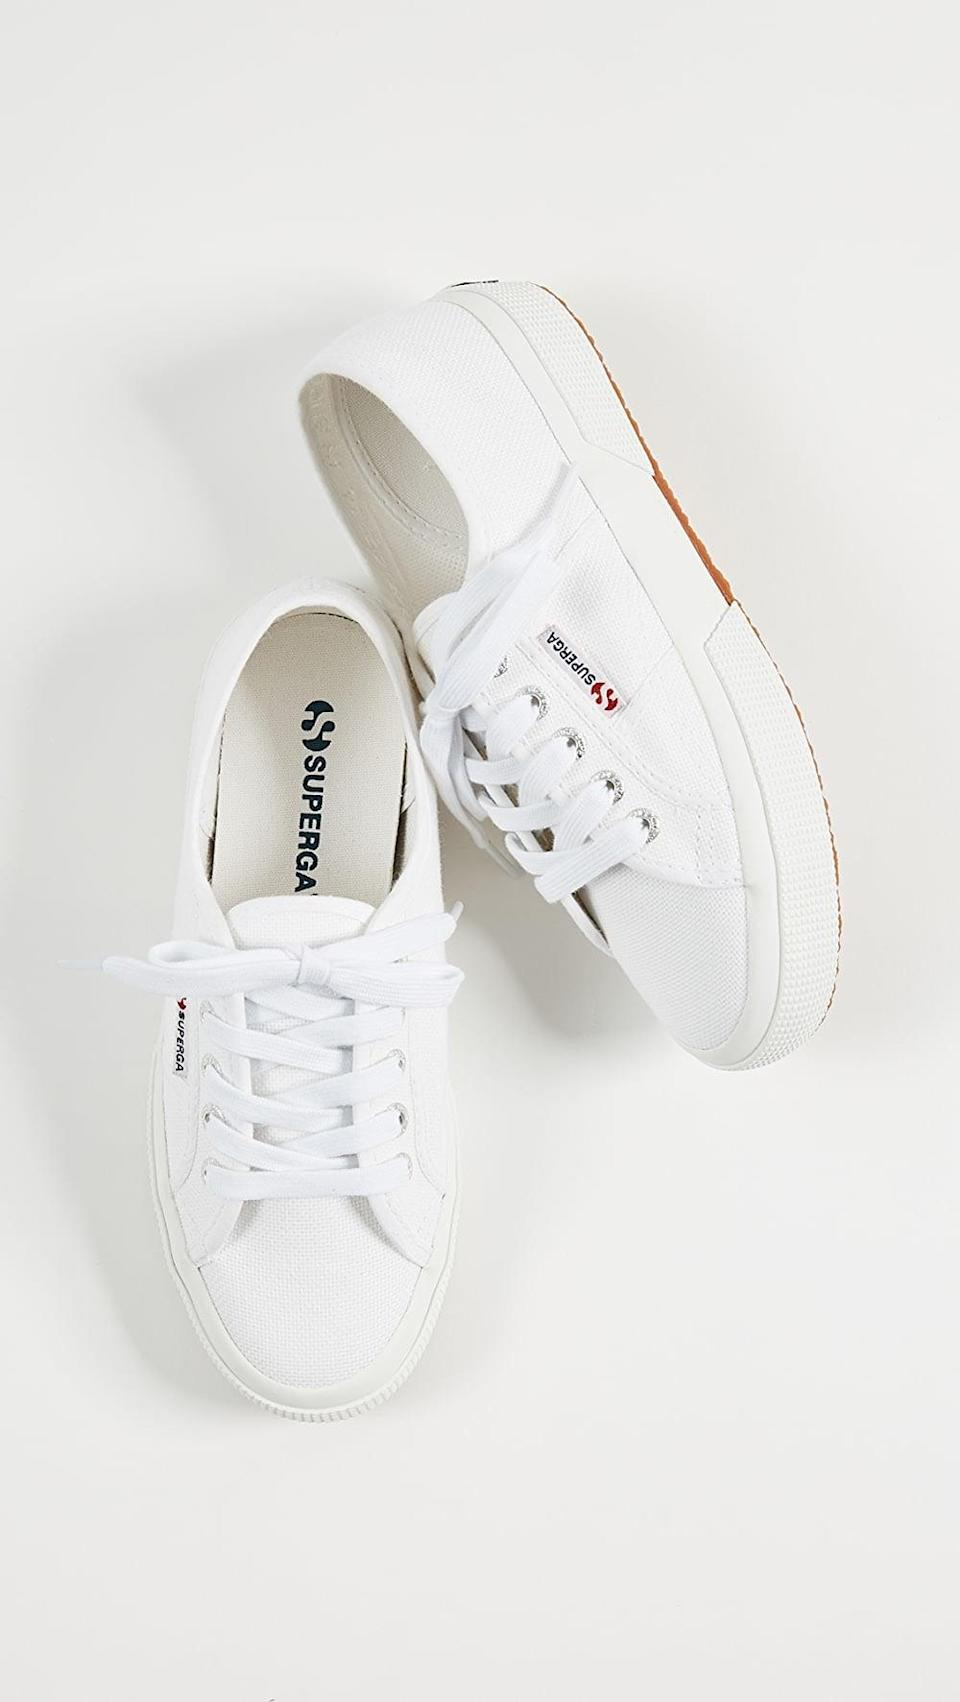 "<p><span>Superga 2750 Cotu Classic Sneakers</span> ($65)</p> <p>""I love a good white leather sneaker, but a canvas pair is always good to have on hand too. Not only are they supereasy to throw on with anything from jeans to dresses in spring and summer, but they're easy to throw in the washing machine and clean, so you'll own them forever."" - Krista Jones, associate editor, Shop</p>"